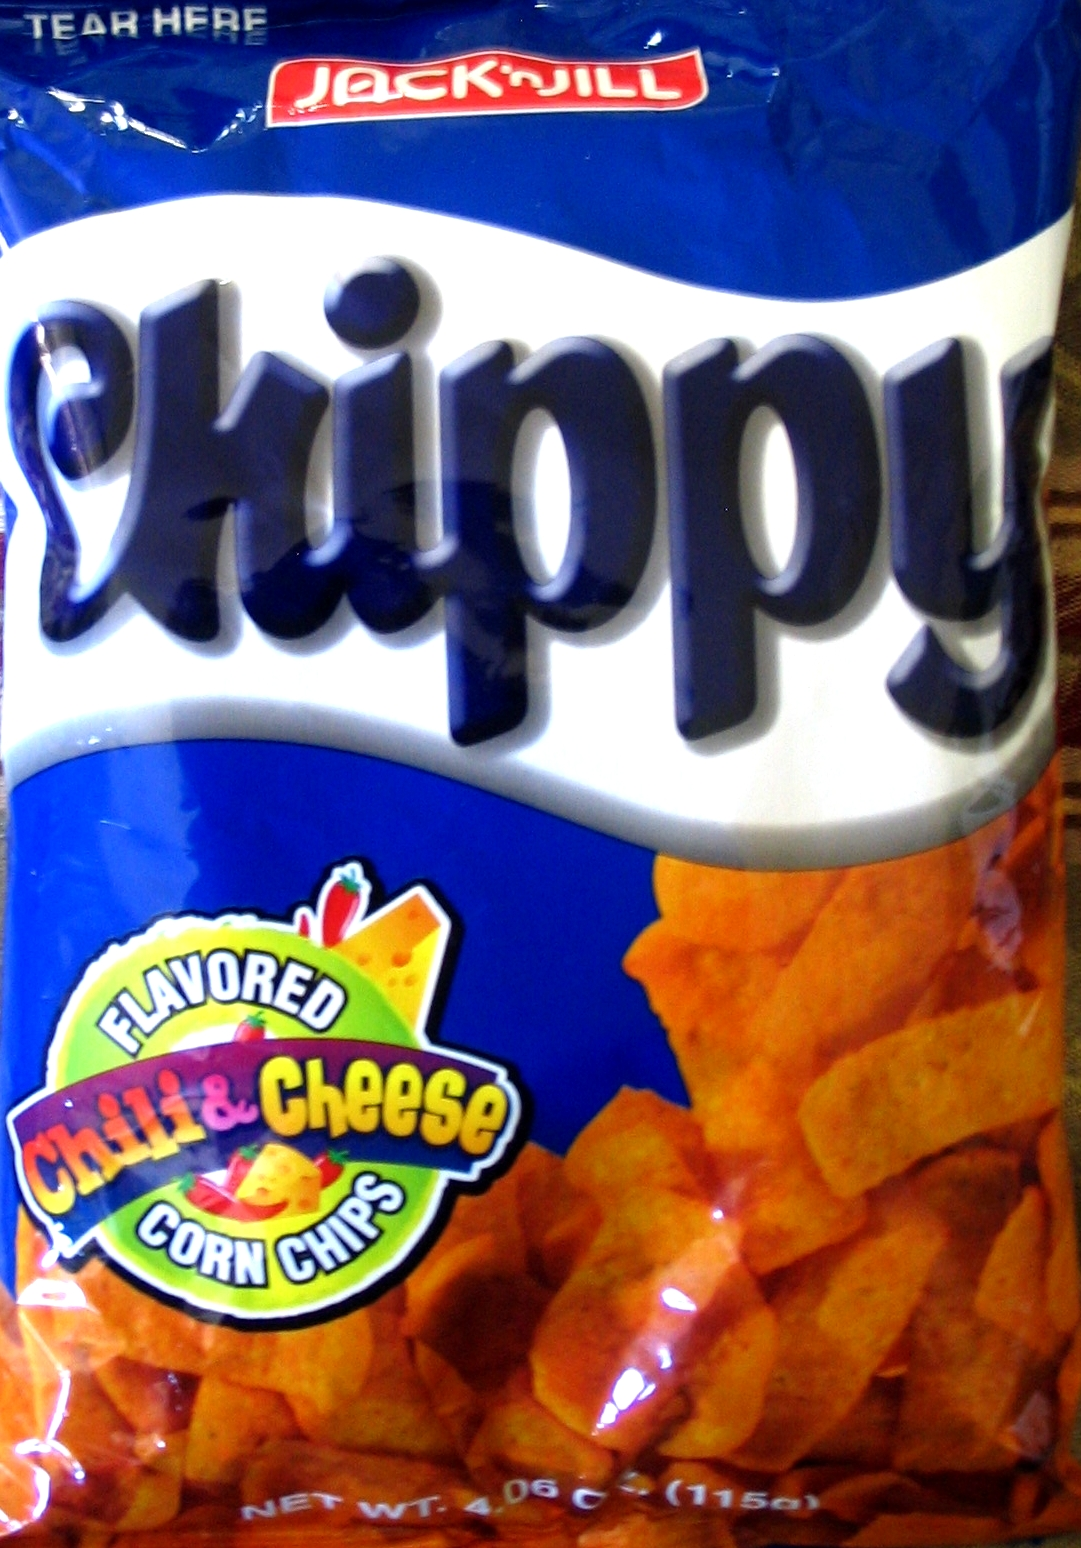 chippy skinchippy перевод, chippy osu, chippy gaming, chippy - daidai jerome, chippy freedom dive, chippy daidai, chippy skin, chippy ho, chippy twitch, chippy art, chippy high brand, chippy puzle paklājs, chippy chippy, chippy daidai jerome osu, chippy mayfair, chippy chappy meaning, chippy york, chippy butty, chippy puslematt, chippy builder